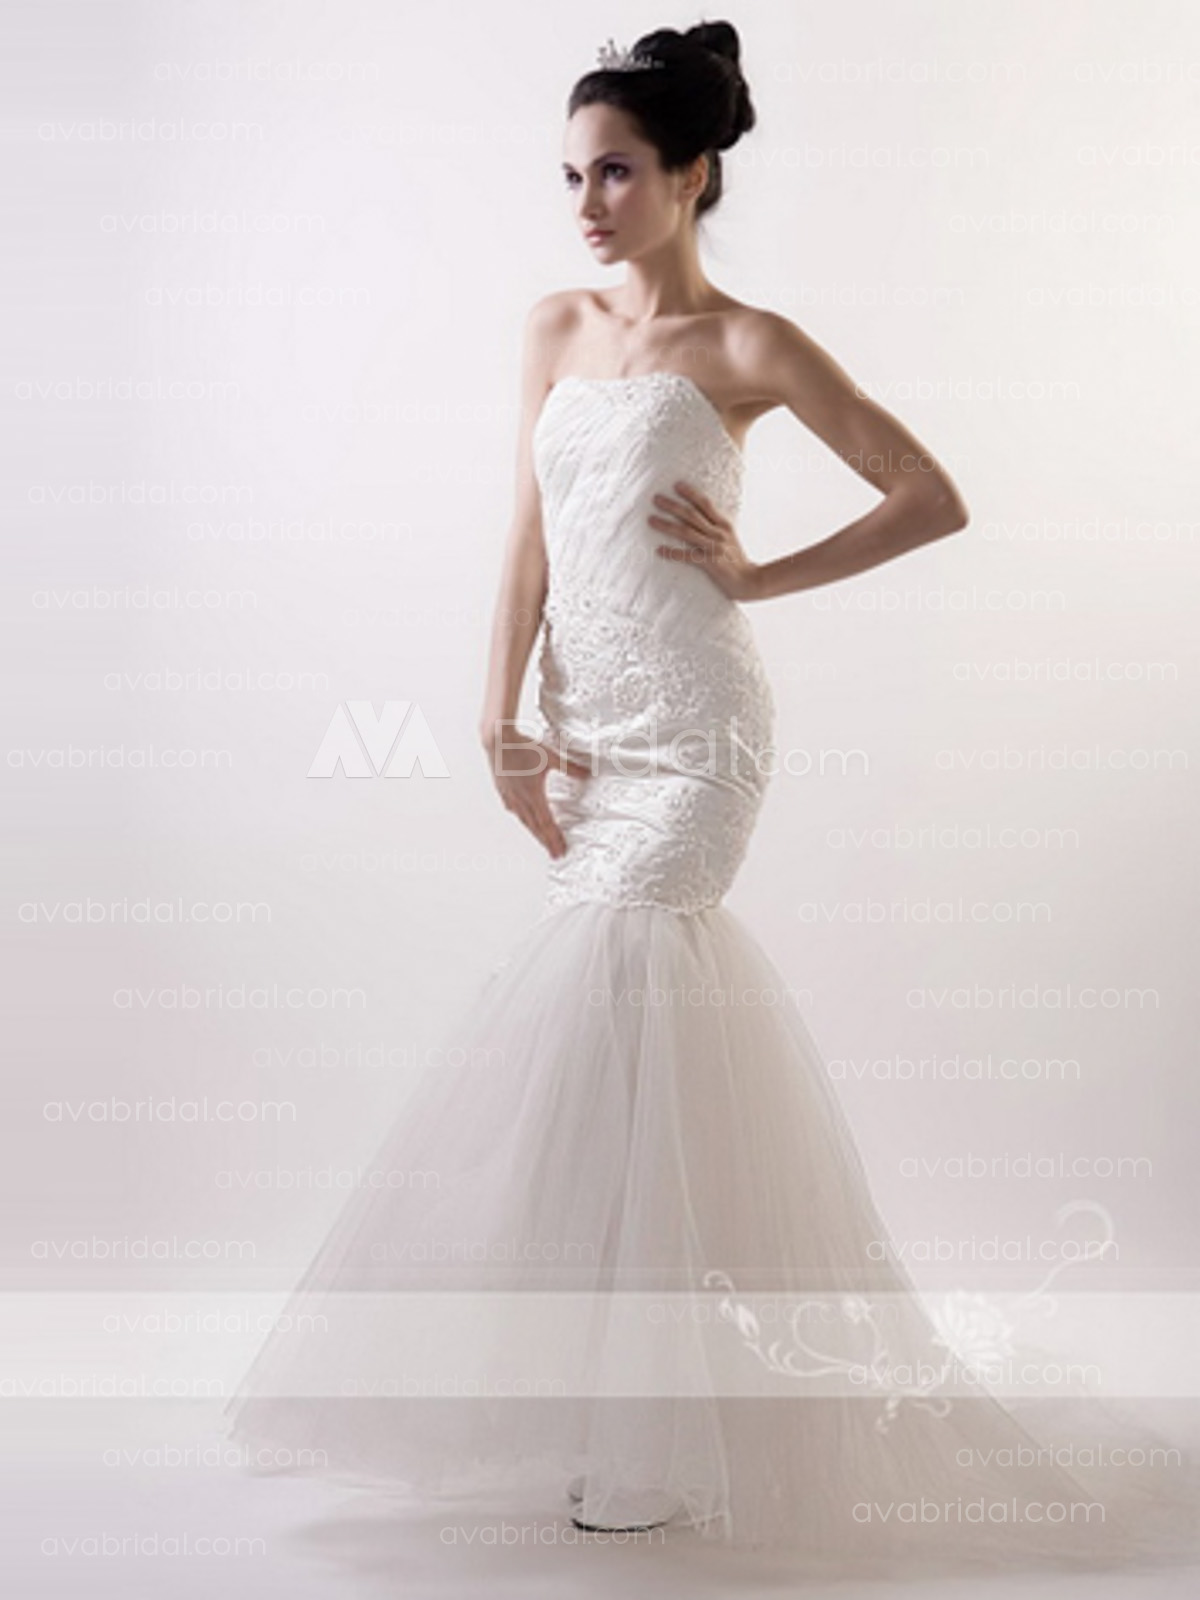 Mermaid Chic Bridal Dress - Estee - Front